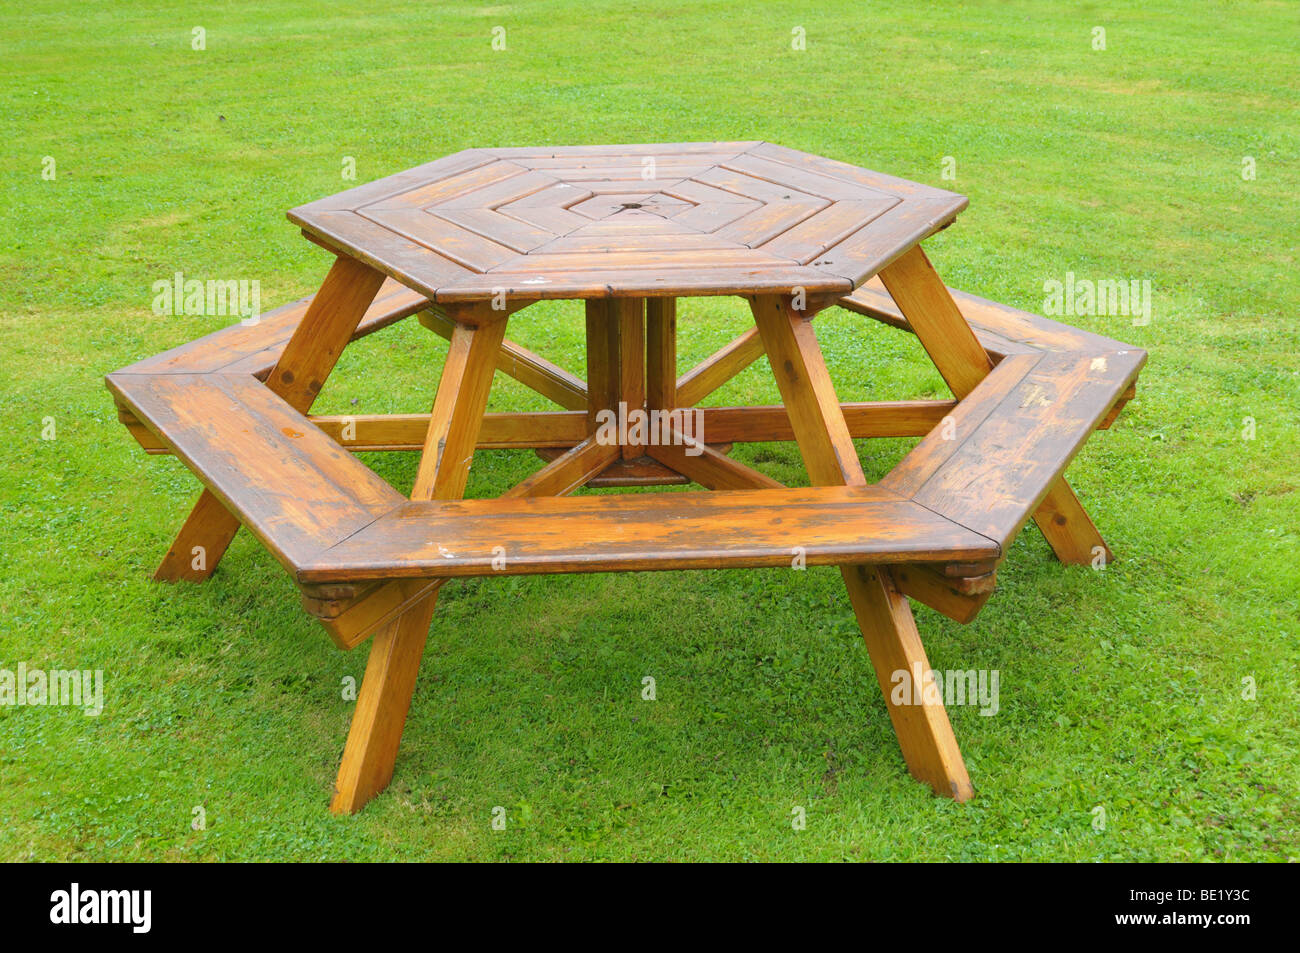 A Circular Sided Picnic Table With Bench Stock Photo Alamy - 6 sided picnic table